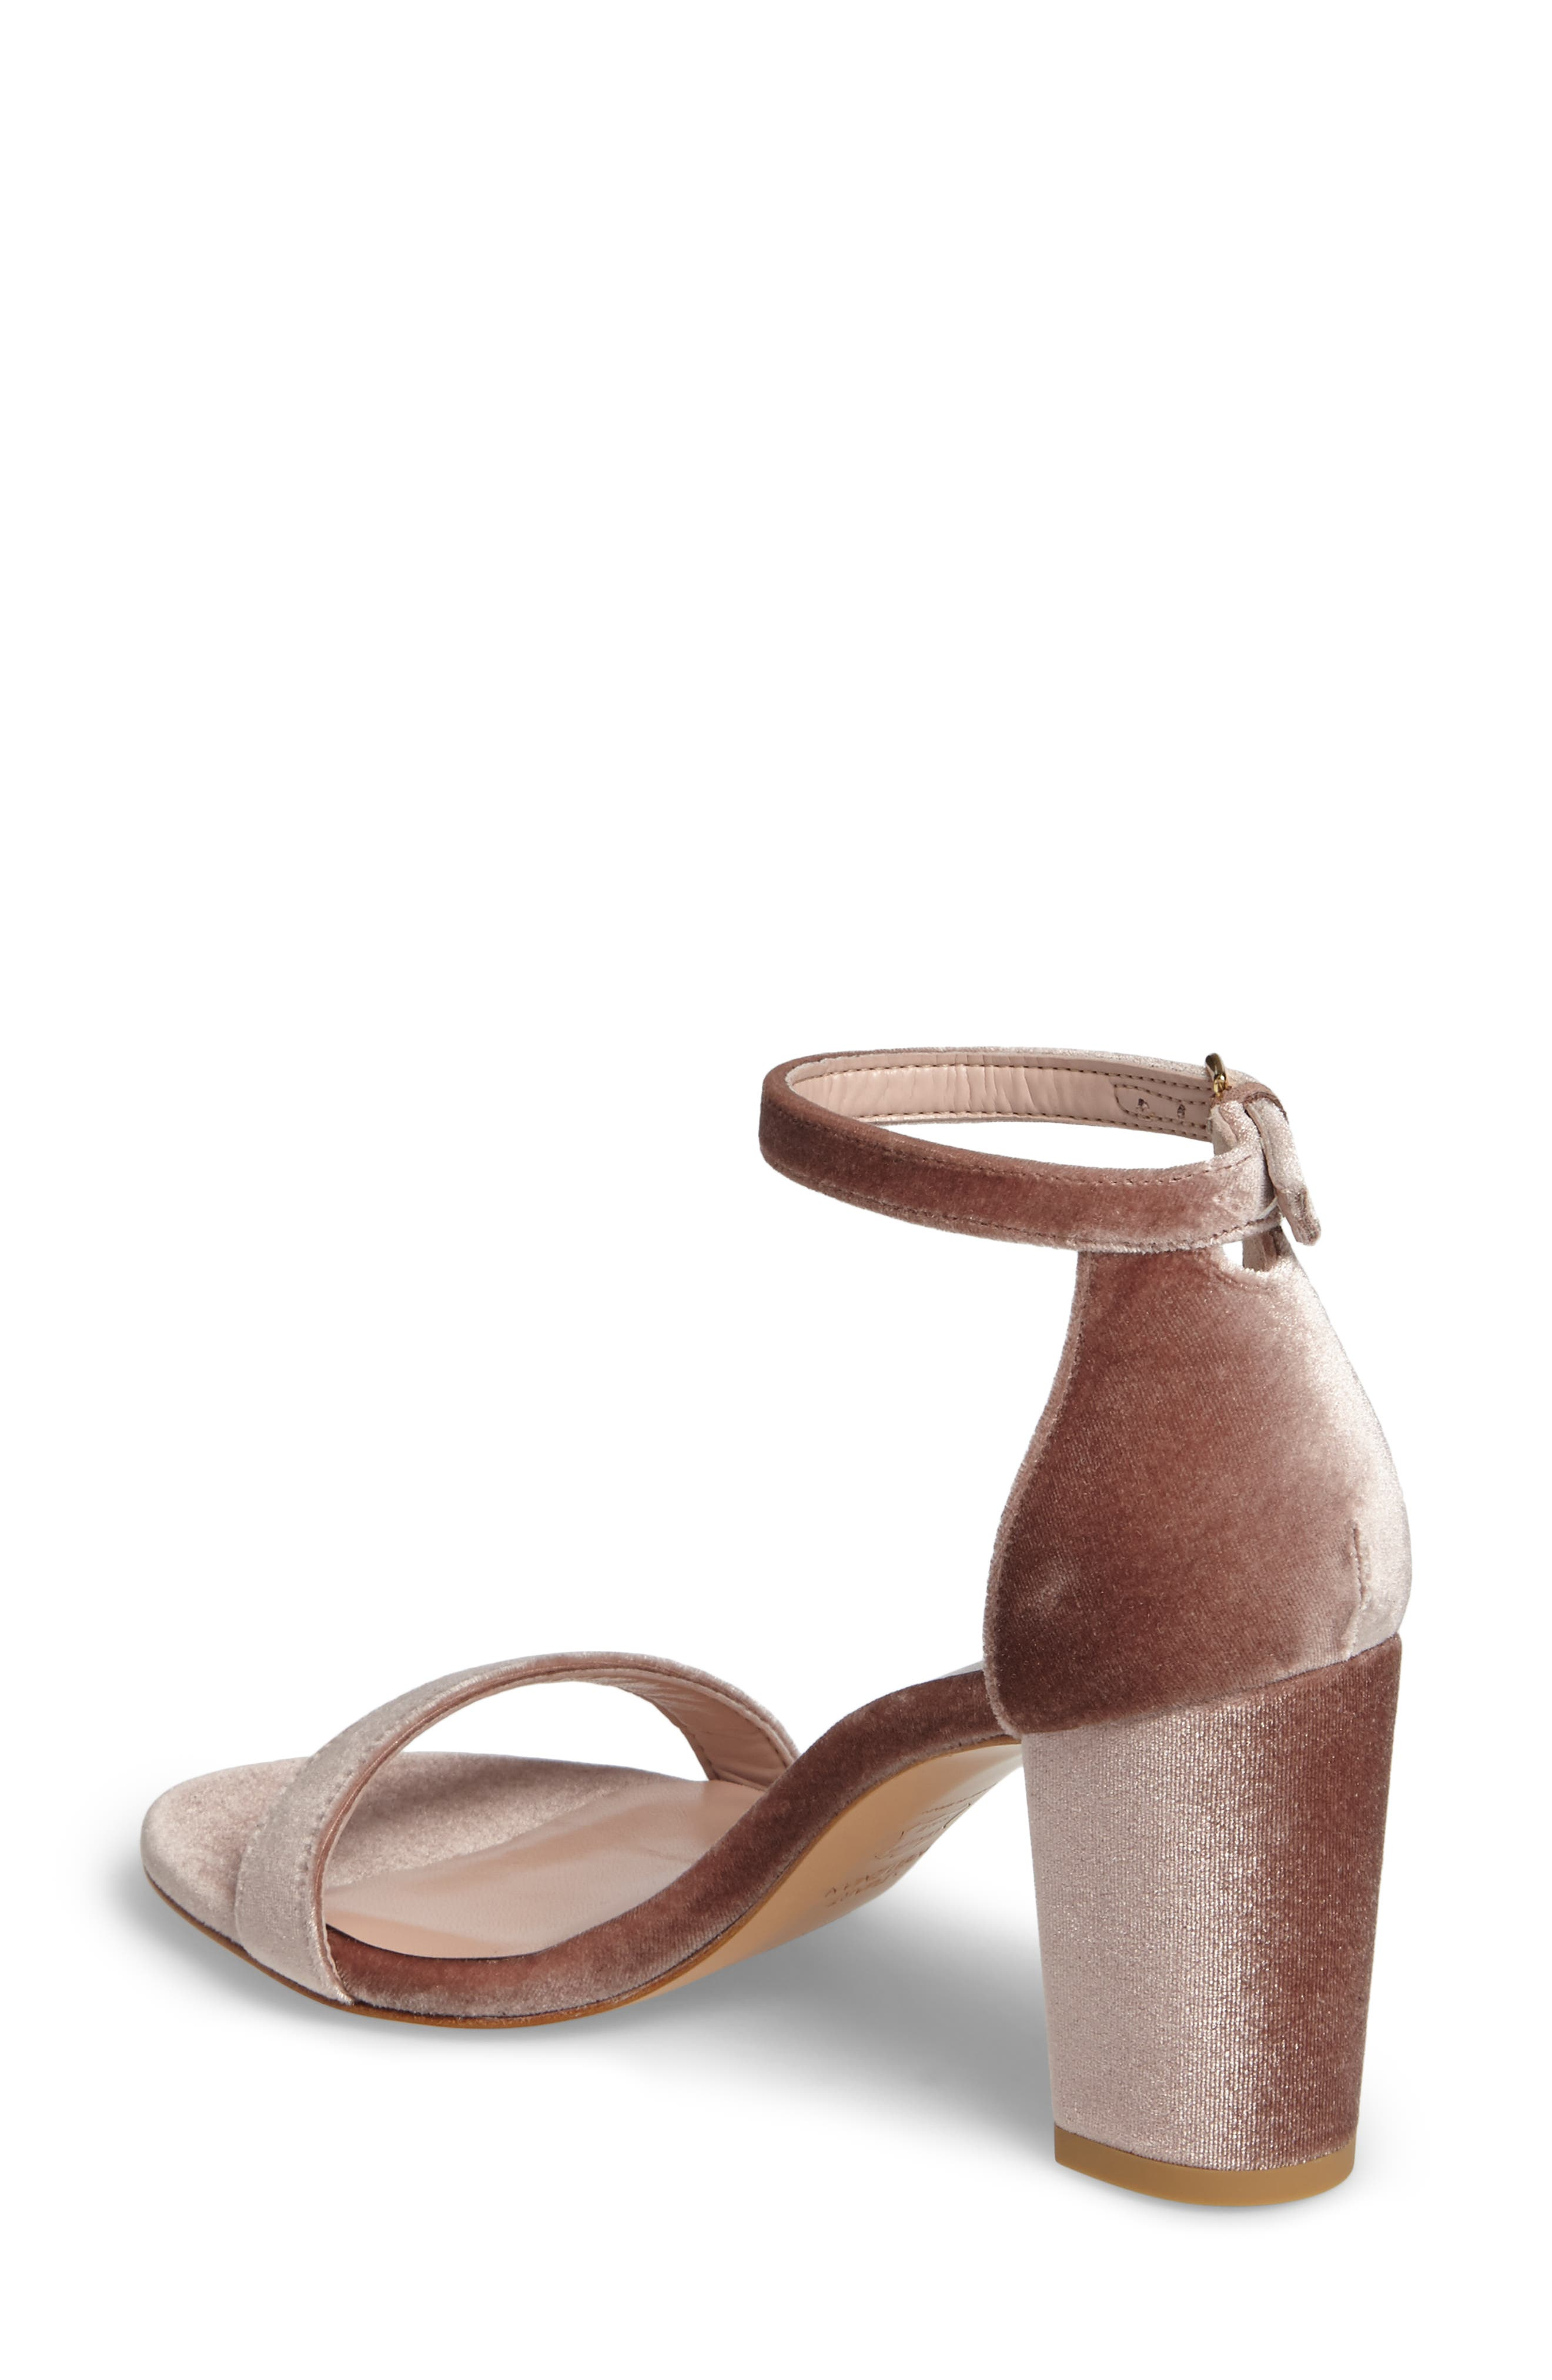 NearlyNude Ankle Strap Sandal,                             Alternate thumbnail 54, color,